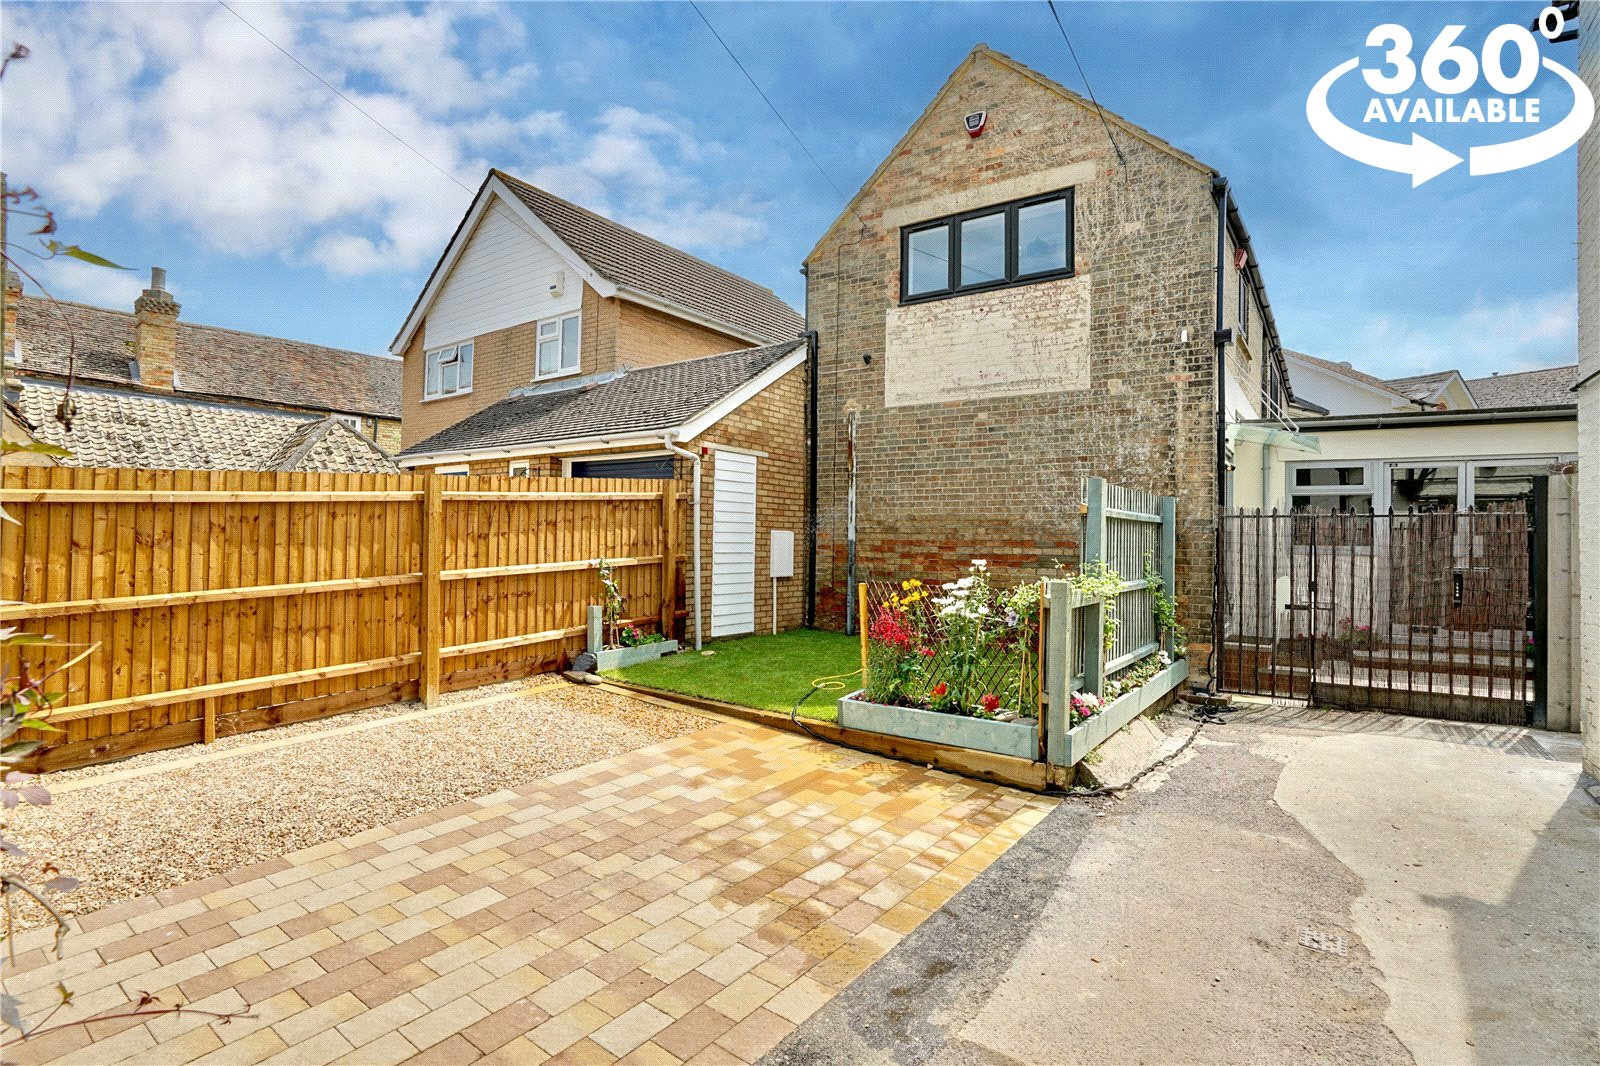 2 bed house for sale in Eaton Ford, St. Neots Road, PE19 7AD 0